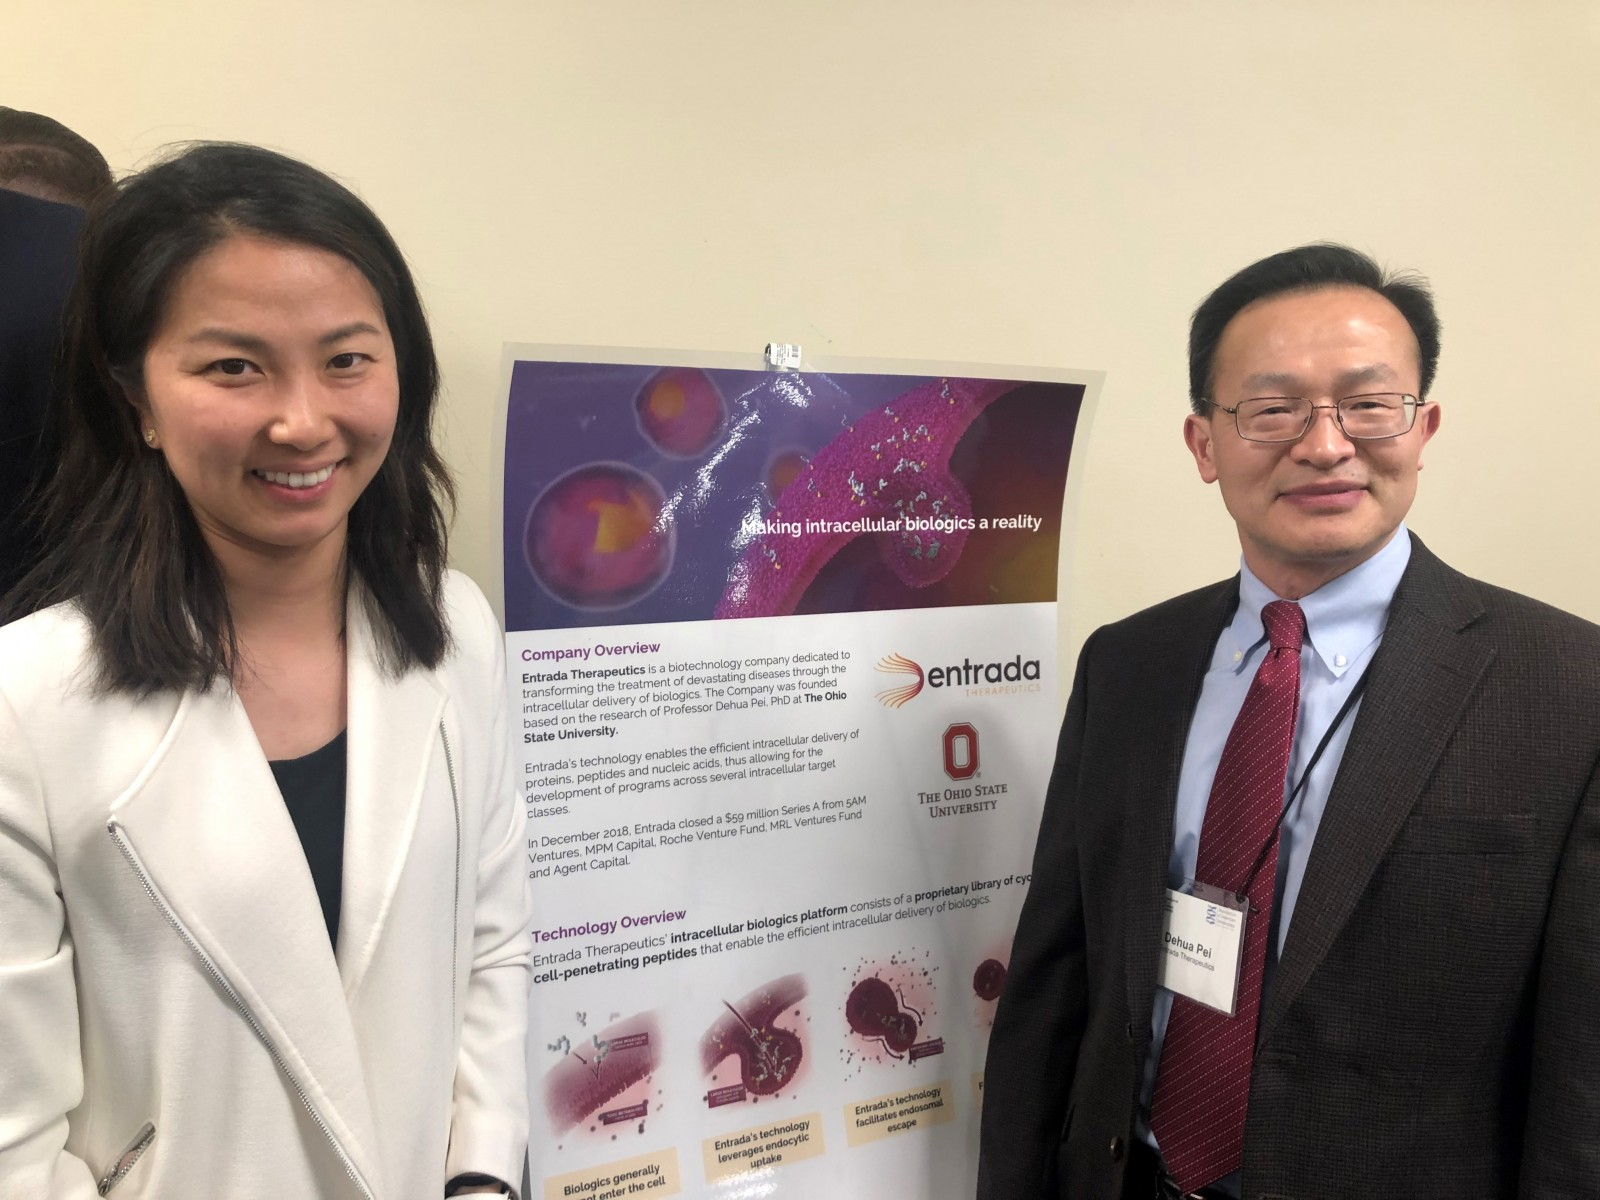 Dehua Pei, right, and Entrada presented at the  2019 University Innovation & Entrepreneurship Showcase